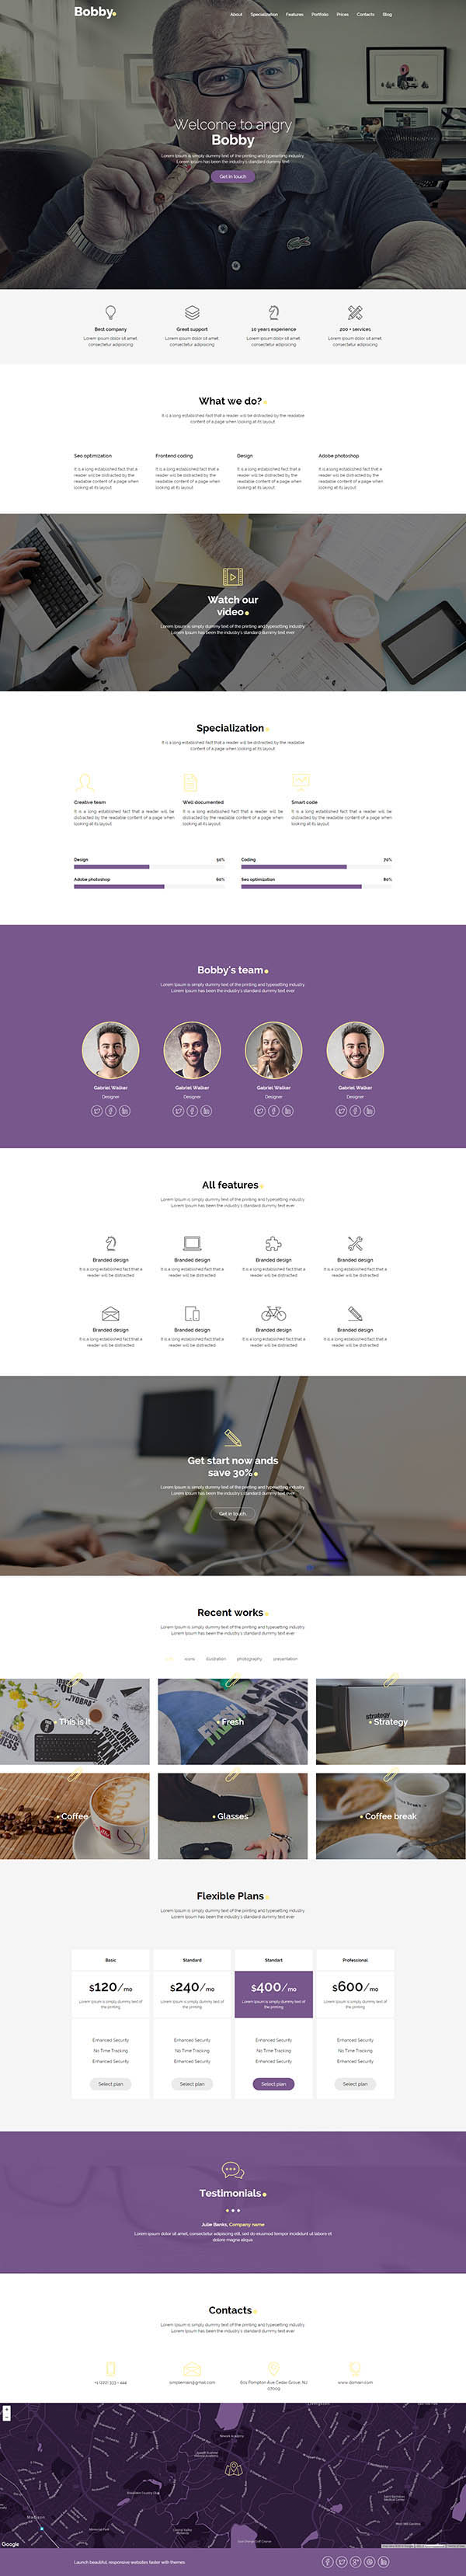 Bobby - Multipurpose Creative Service Landing Page